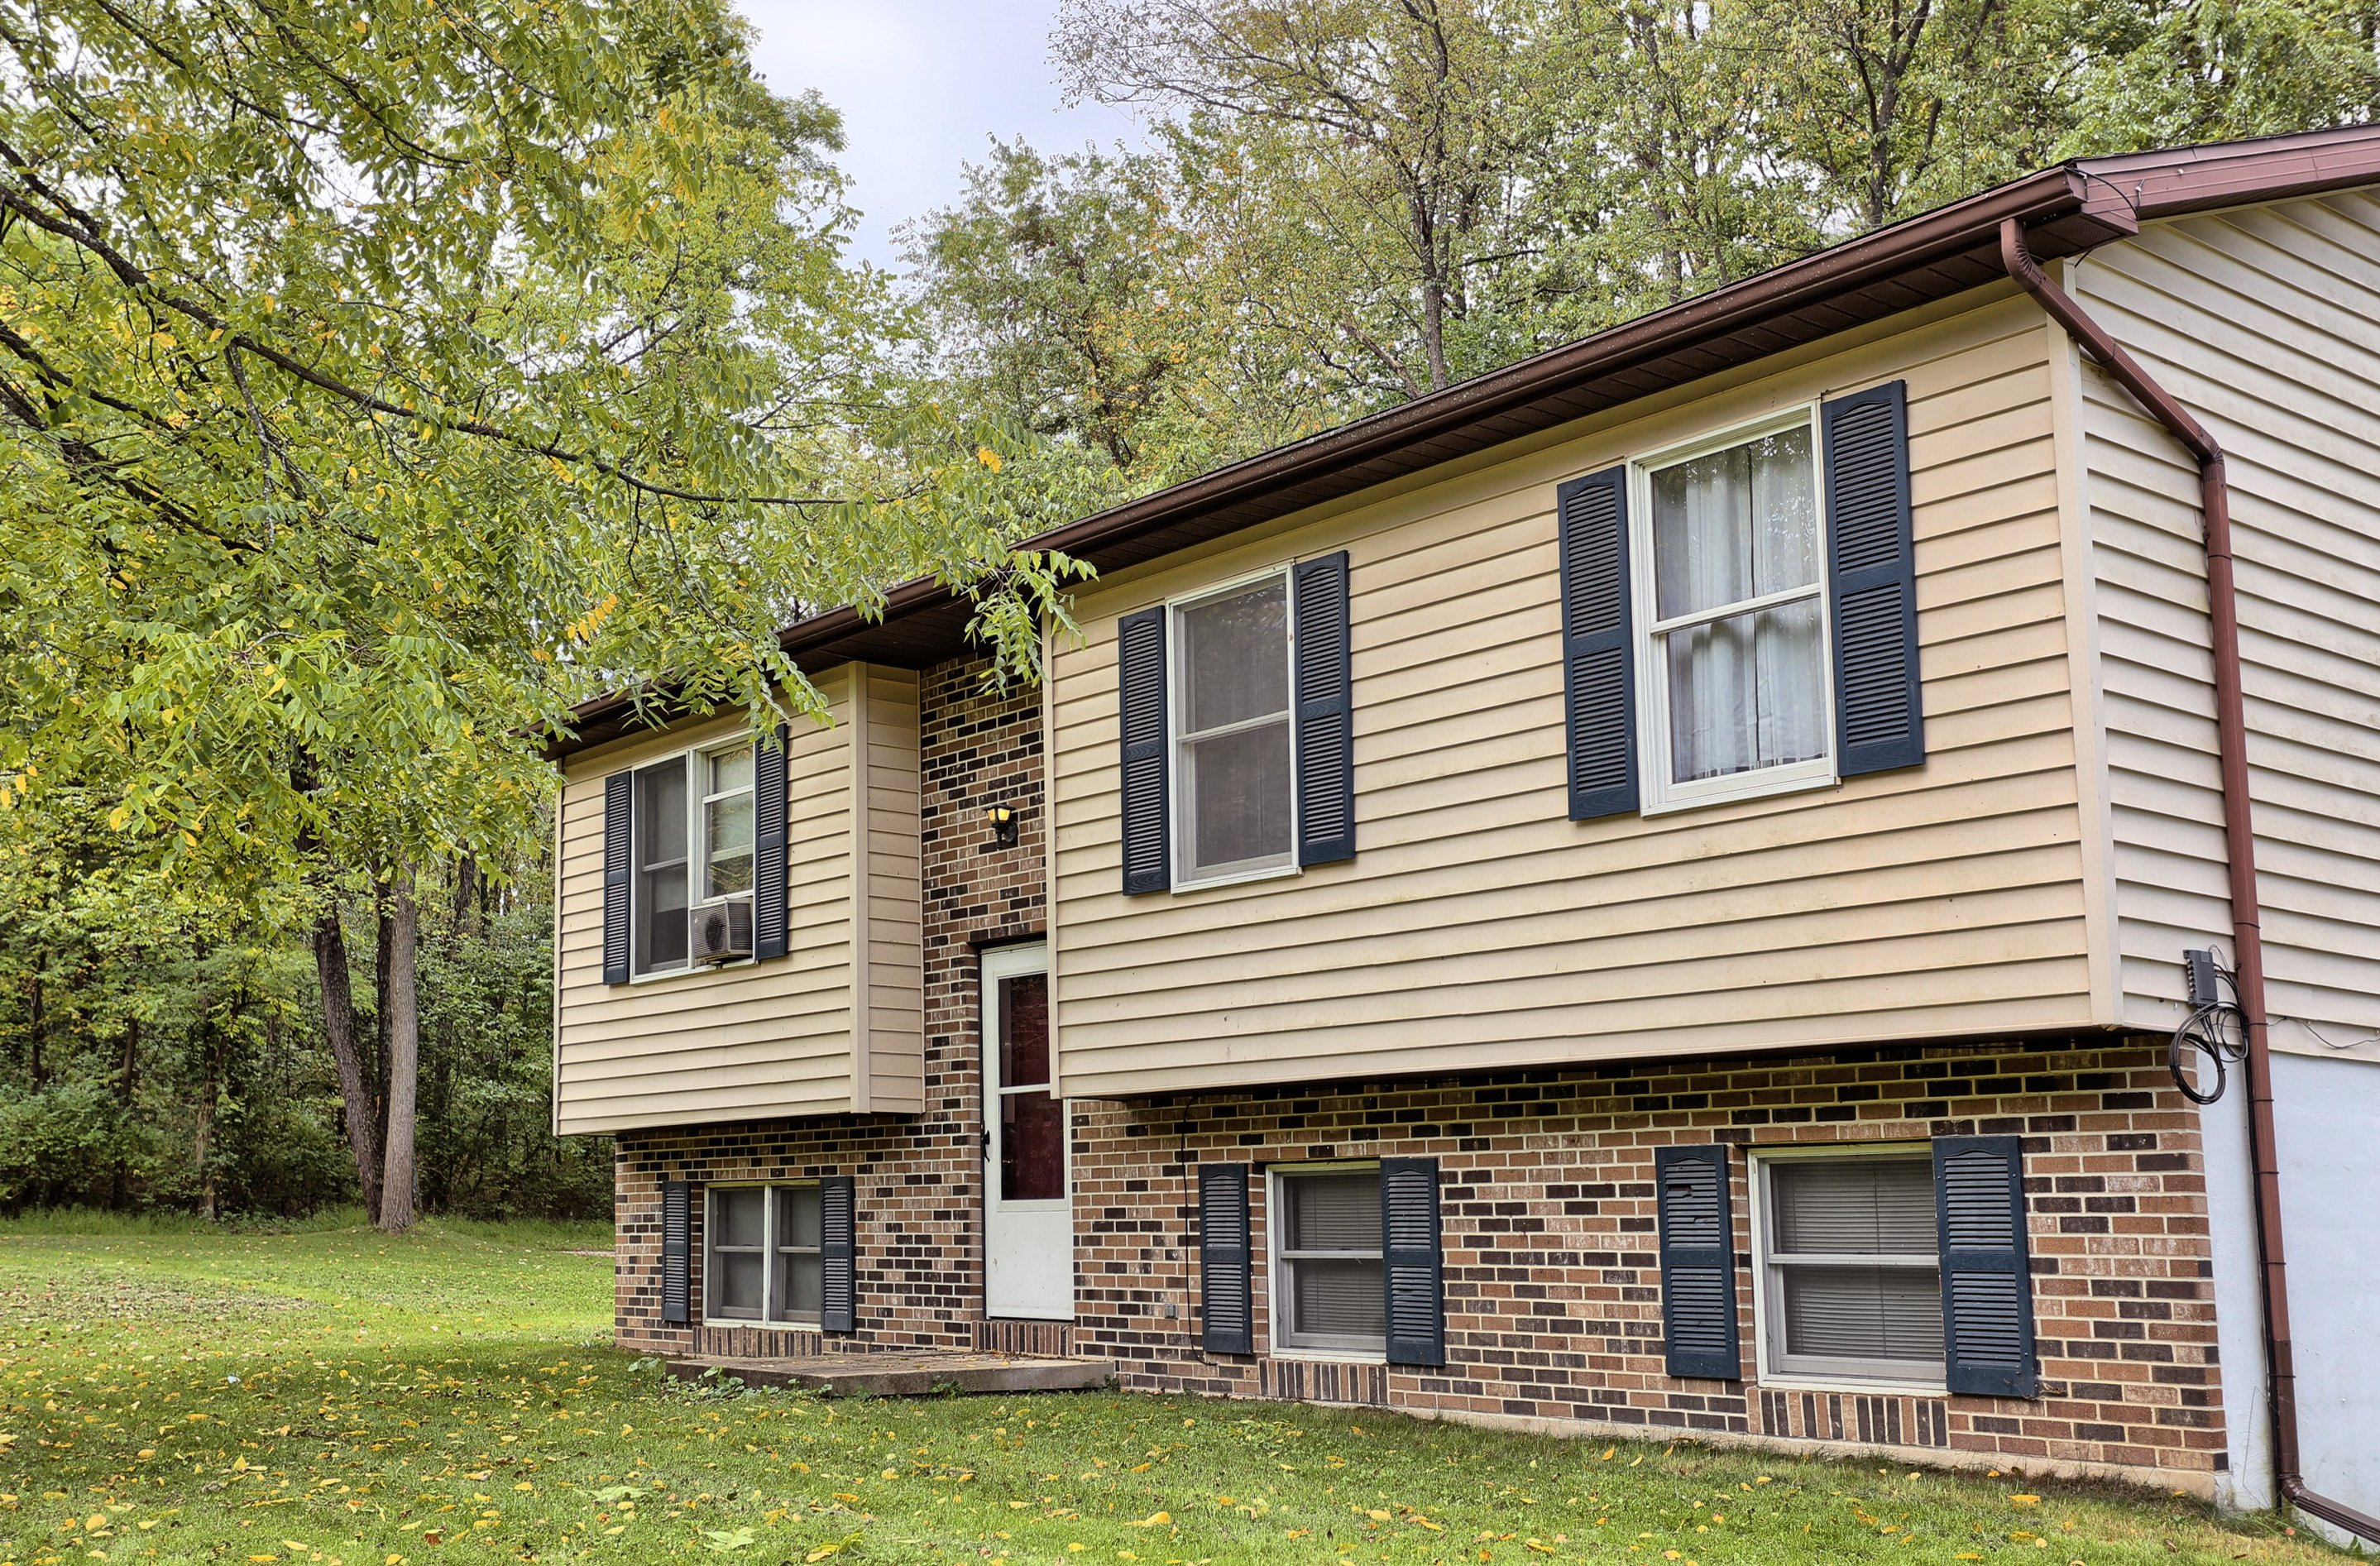 House For Rent In Bellefonte, PA | 1550 Barns Lane | Property Management, Inc.